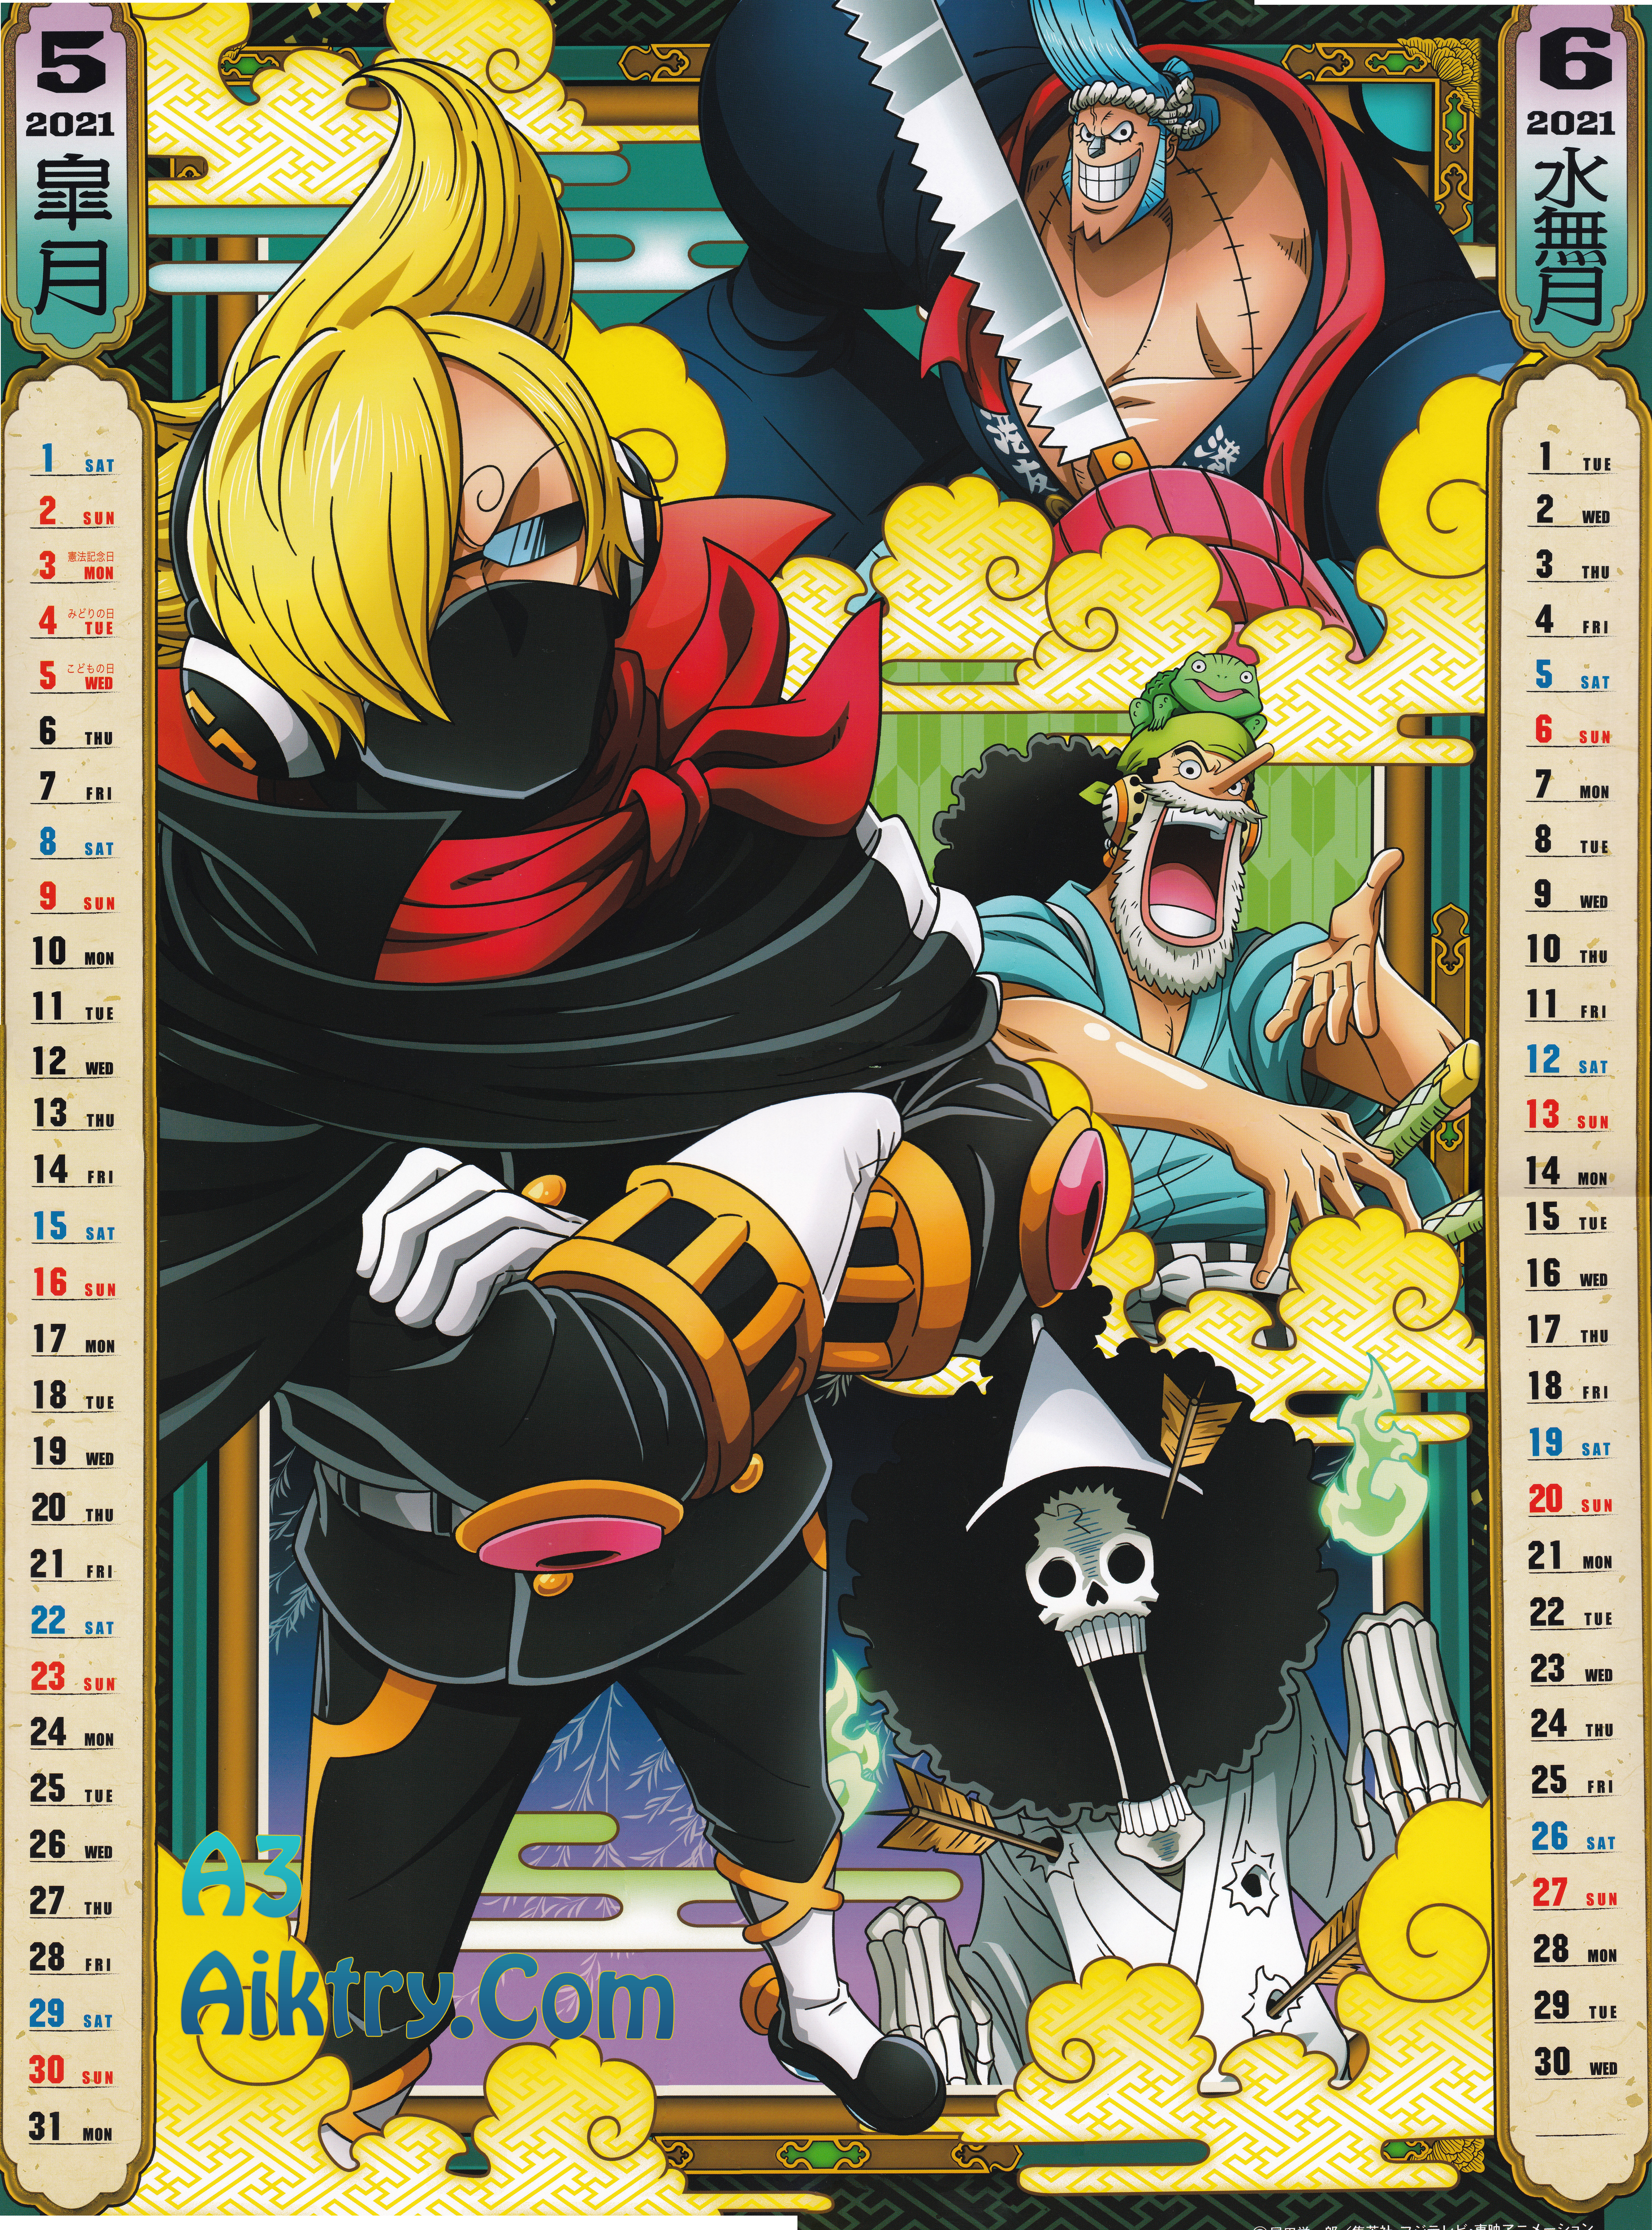 05-06 Raid Suit Sanji, Franky, Usopp, Brook (One Piece 2021 Calendar)